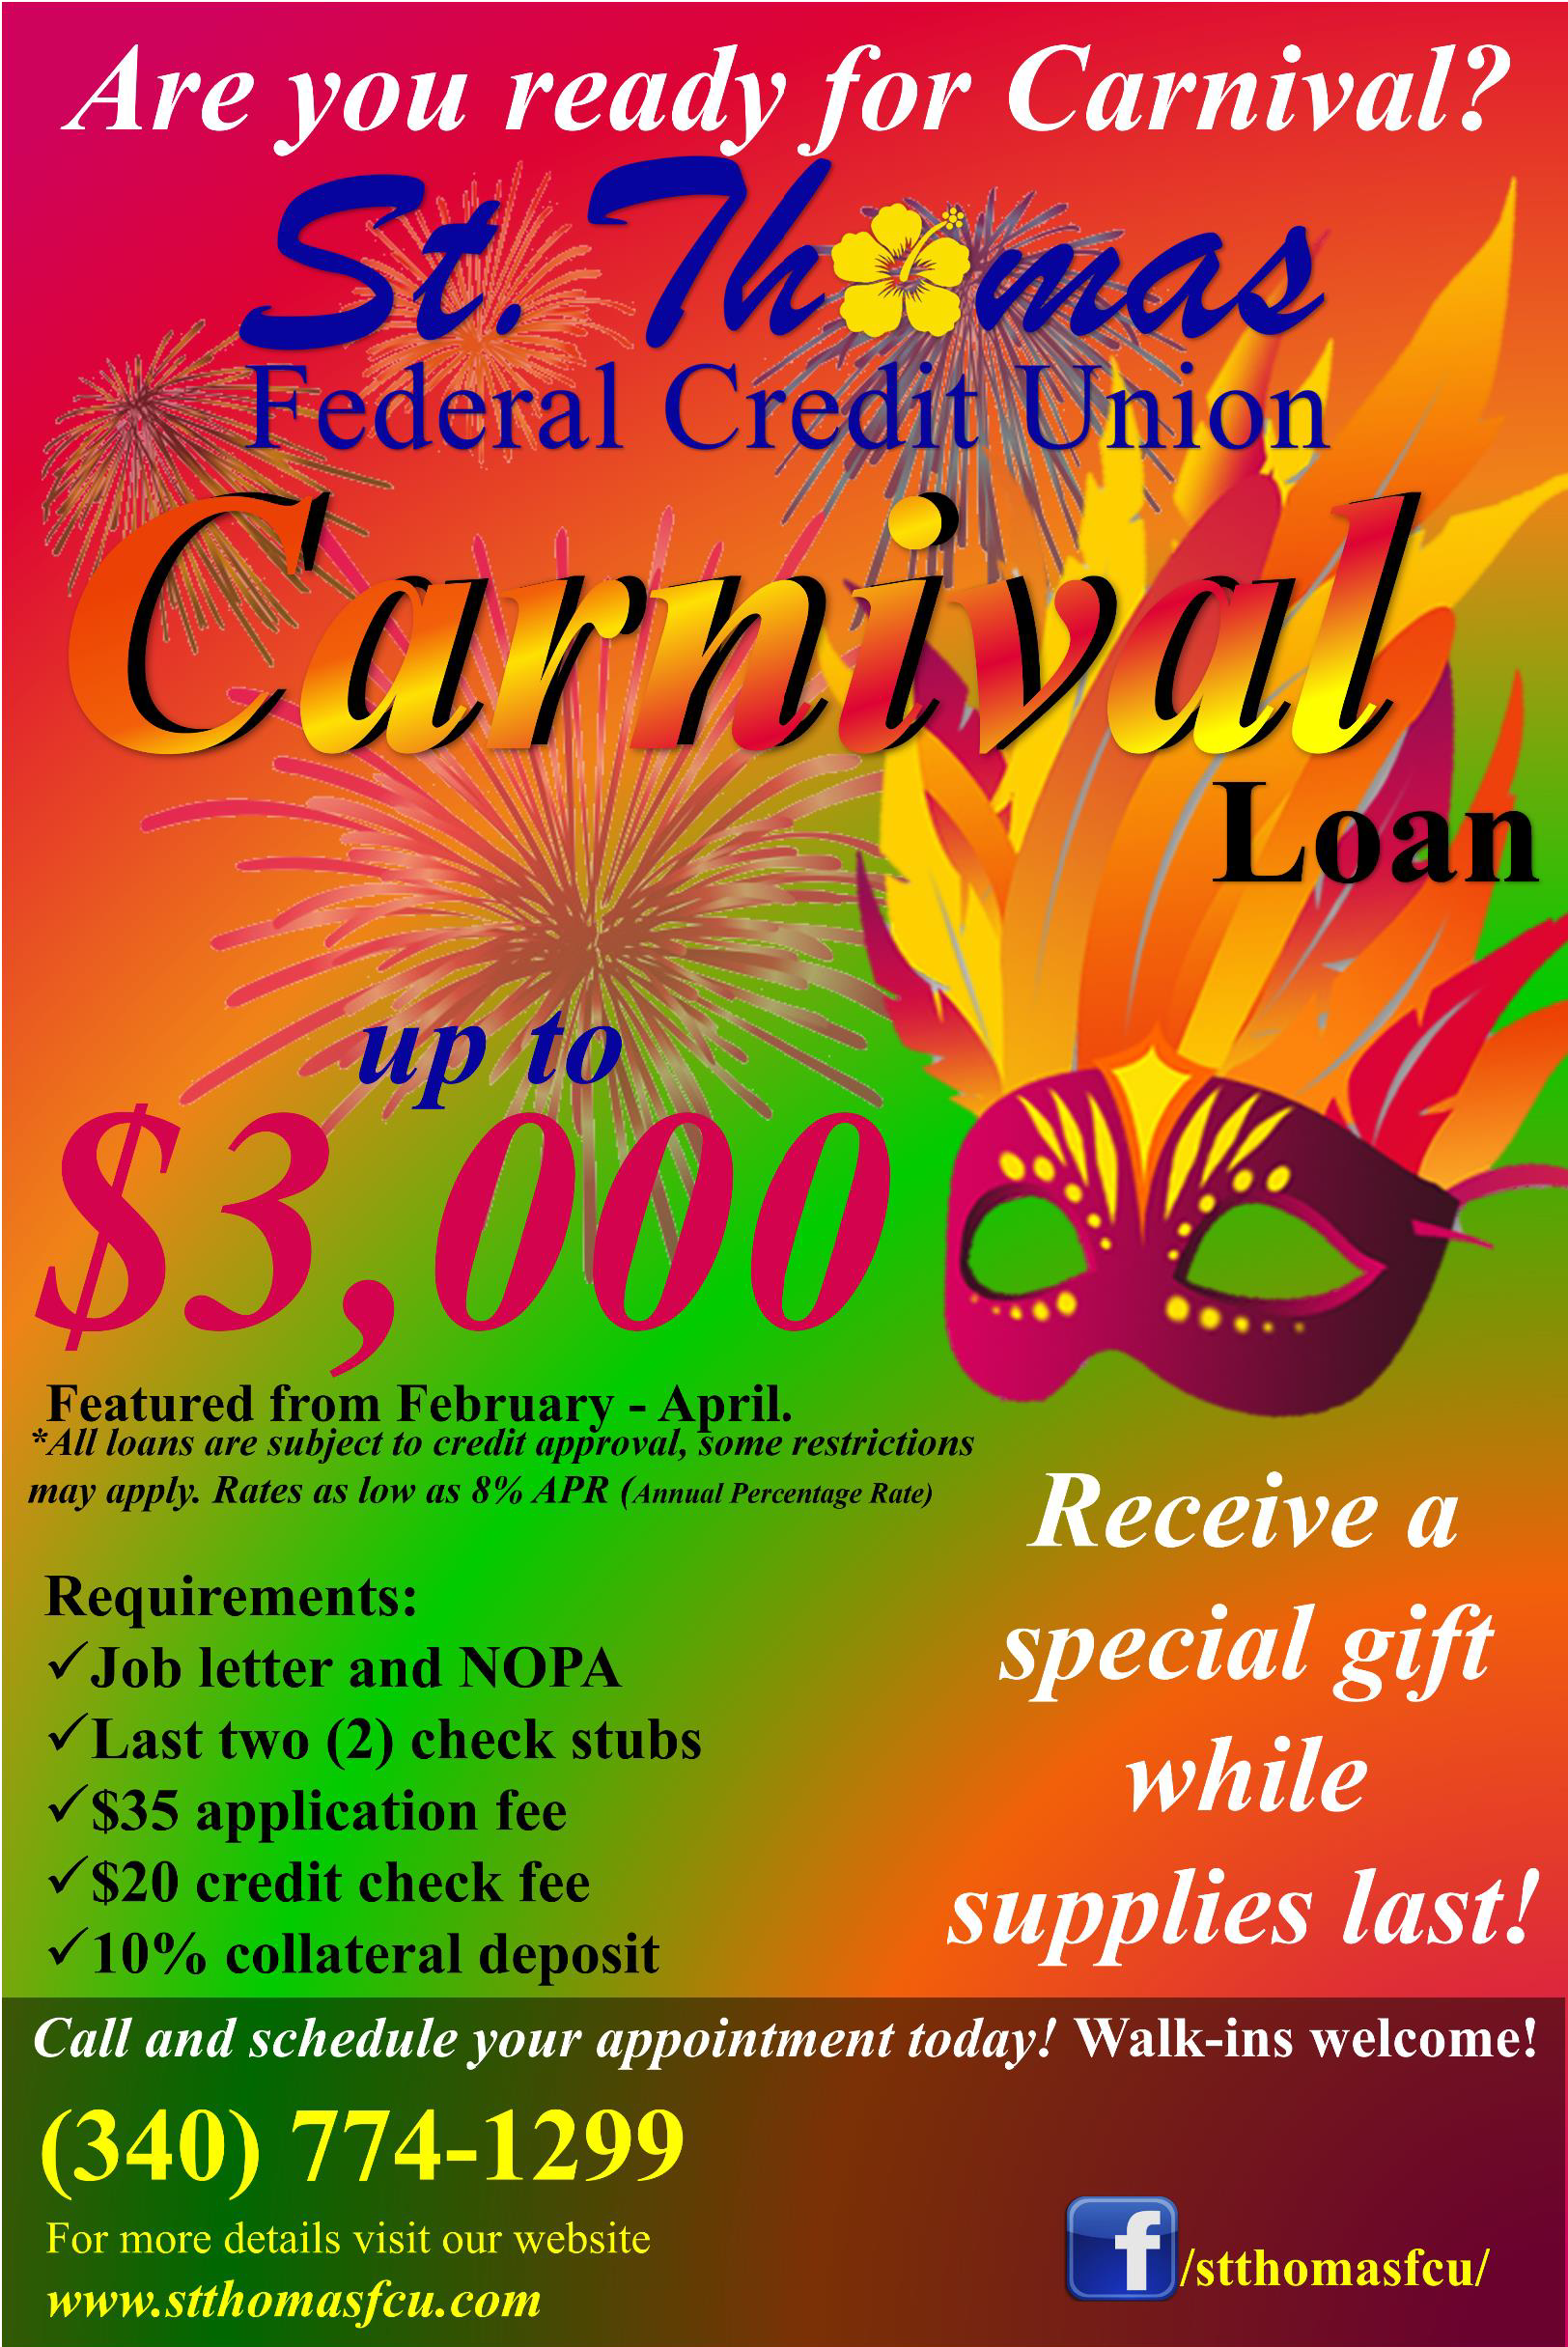 Apply for our carnival loan by calling the credit union at 340-774-1299